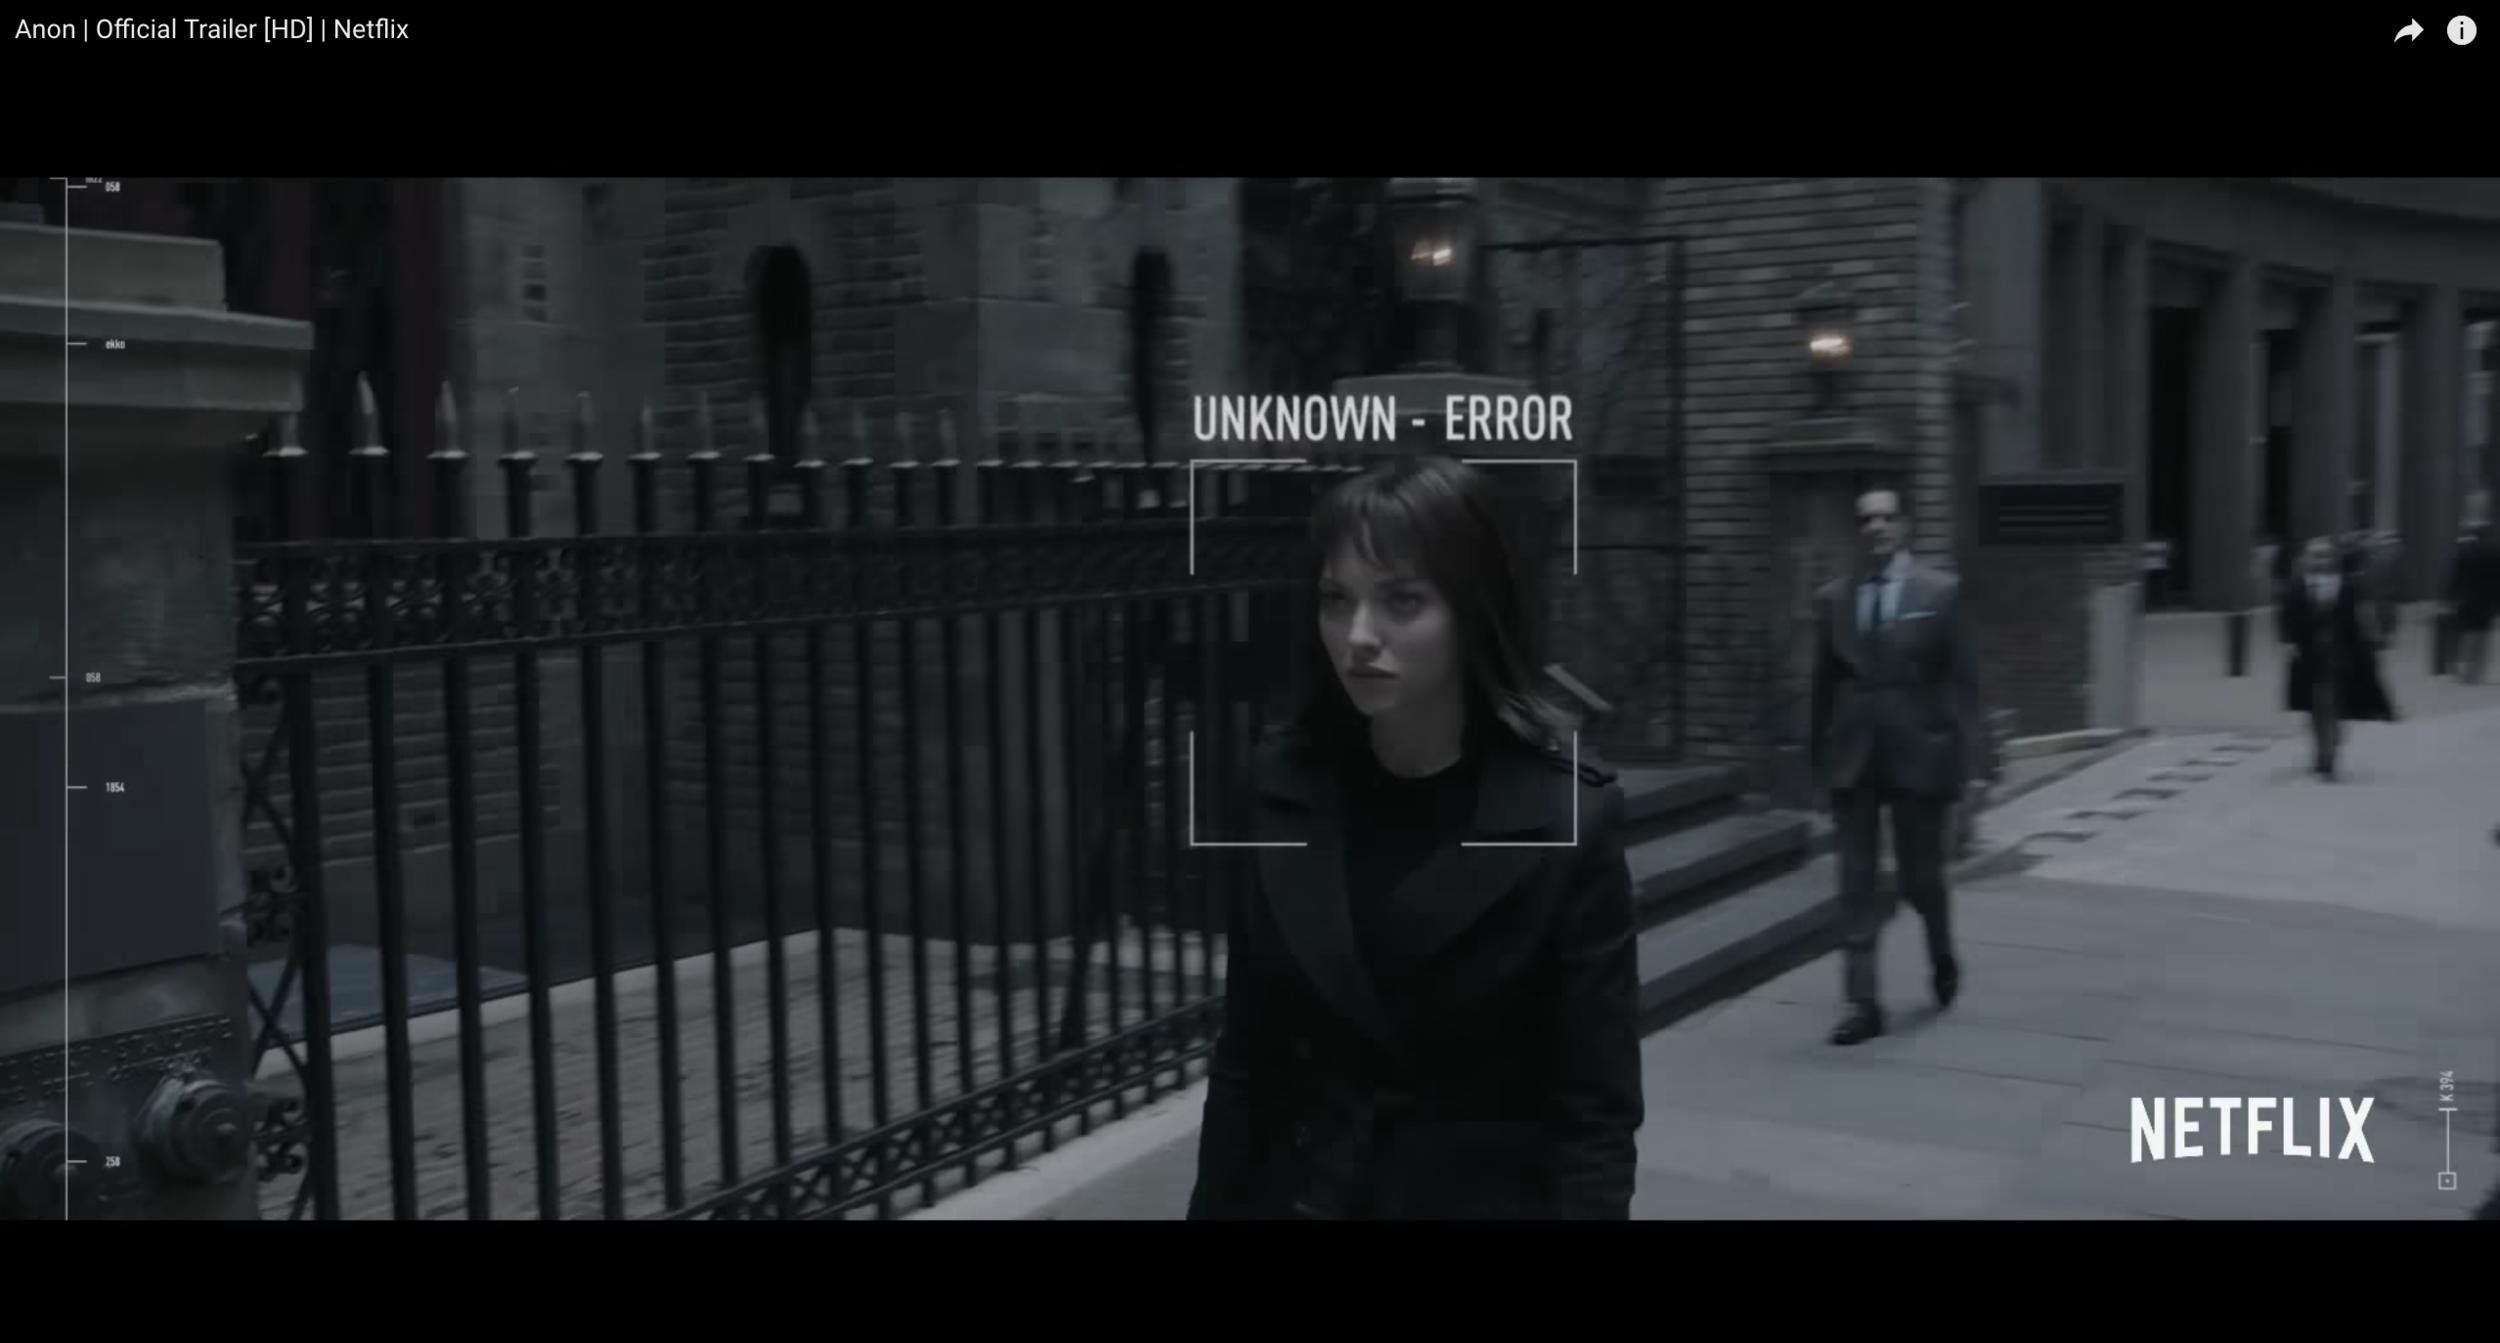 'The Girl' is an 'error' inside the system.